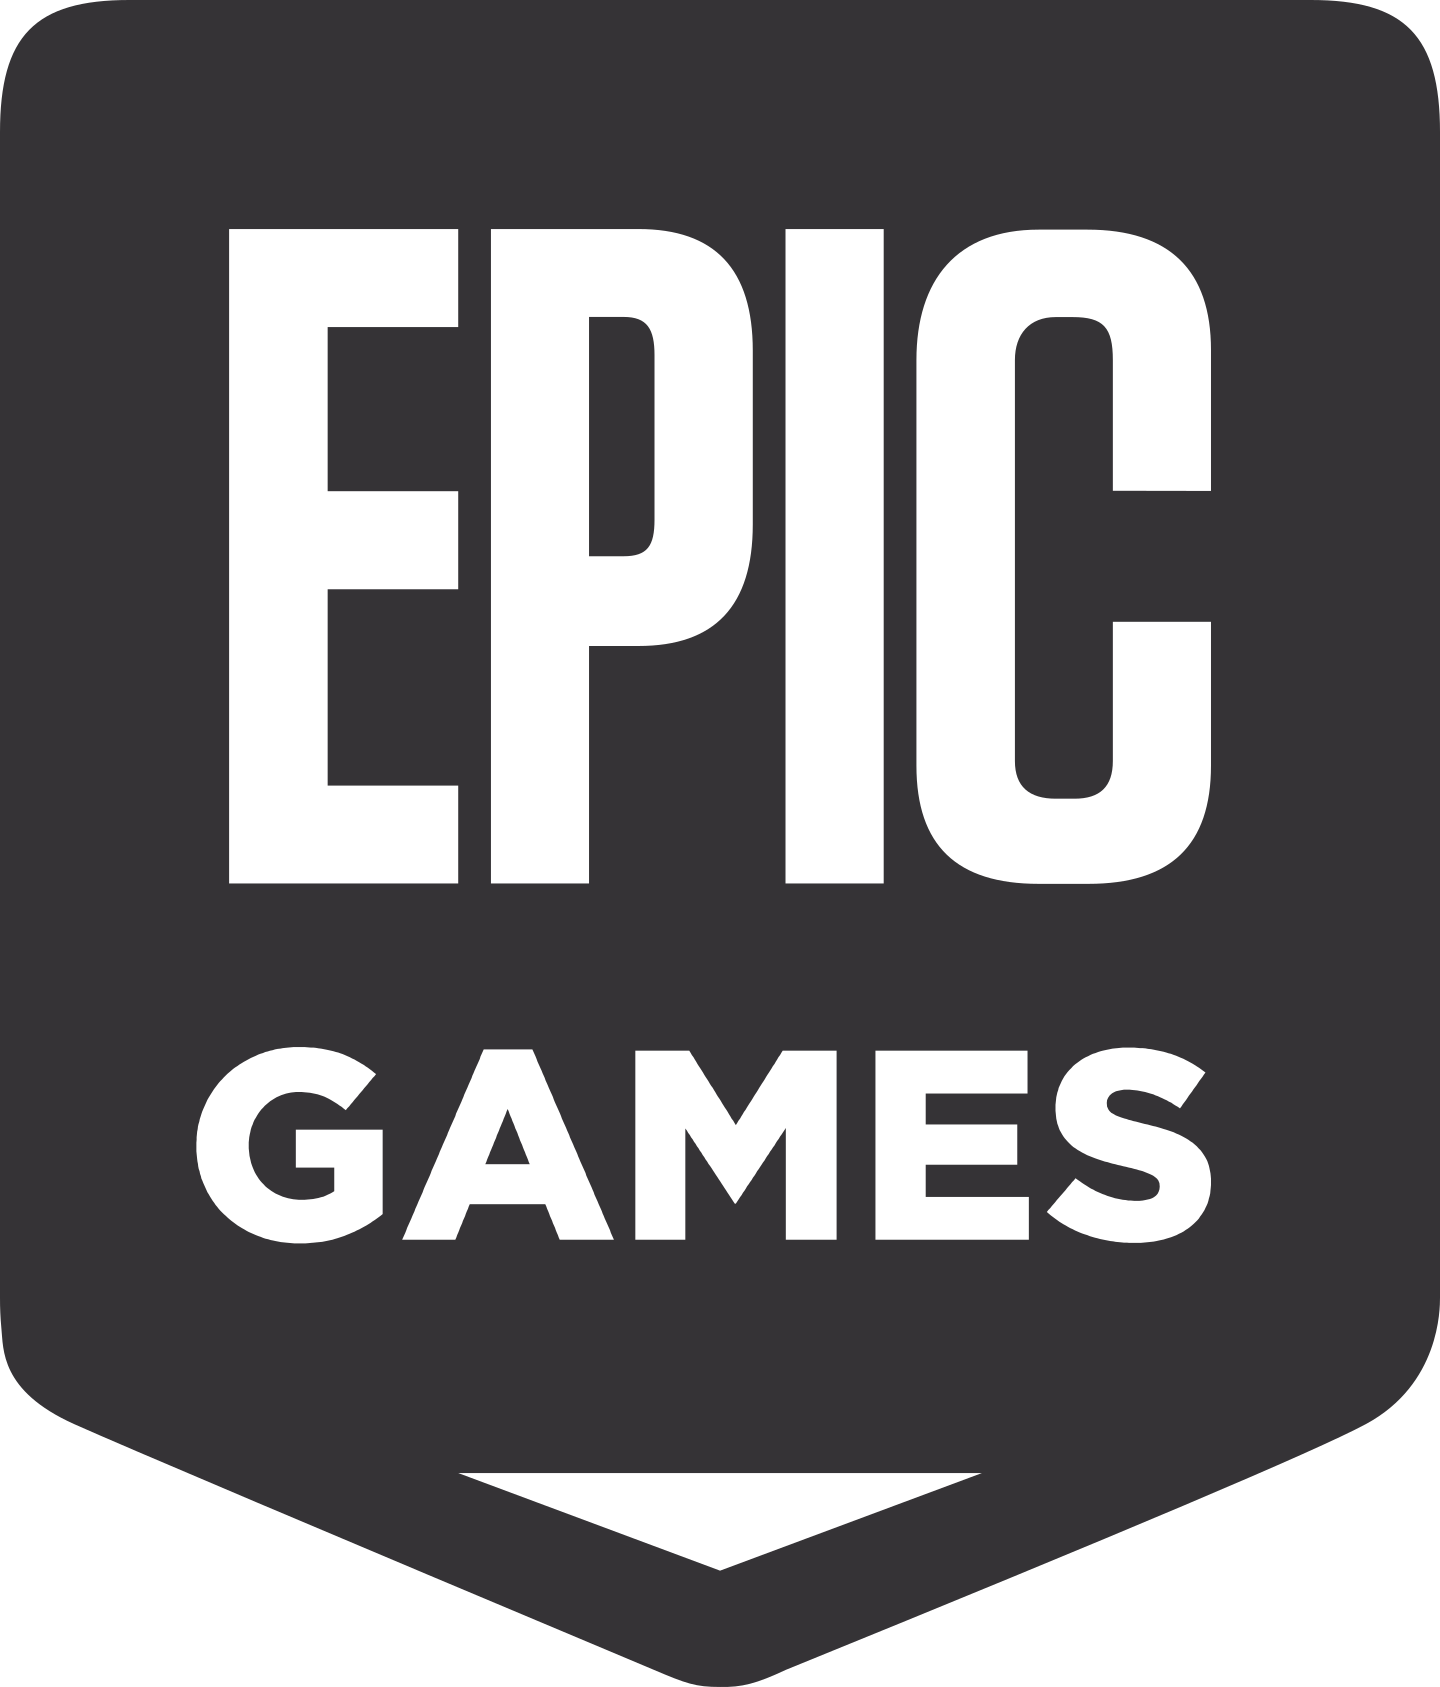 epic games logo 3 - Epic Games Logo